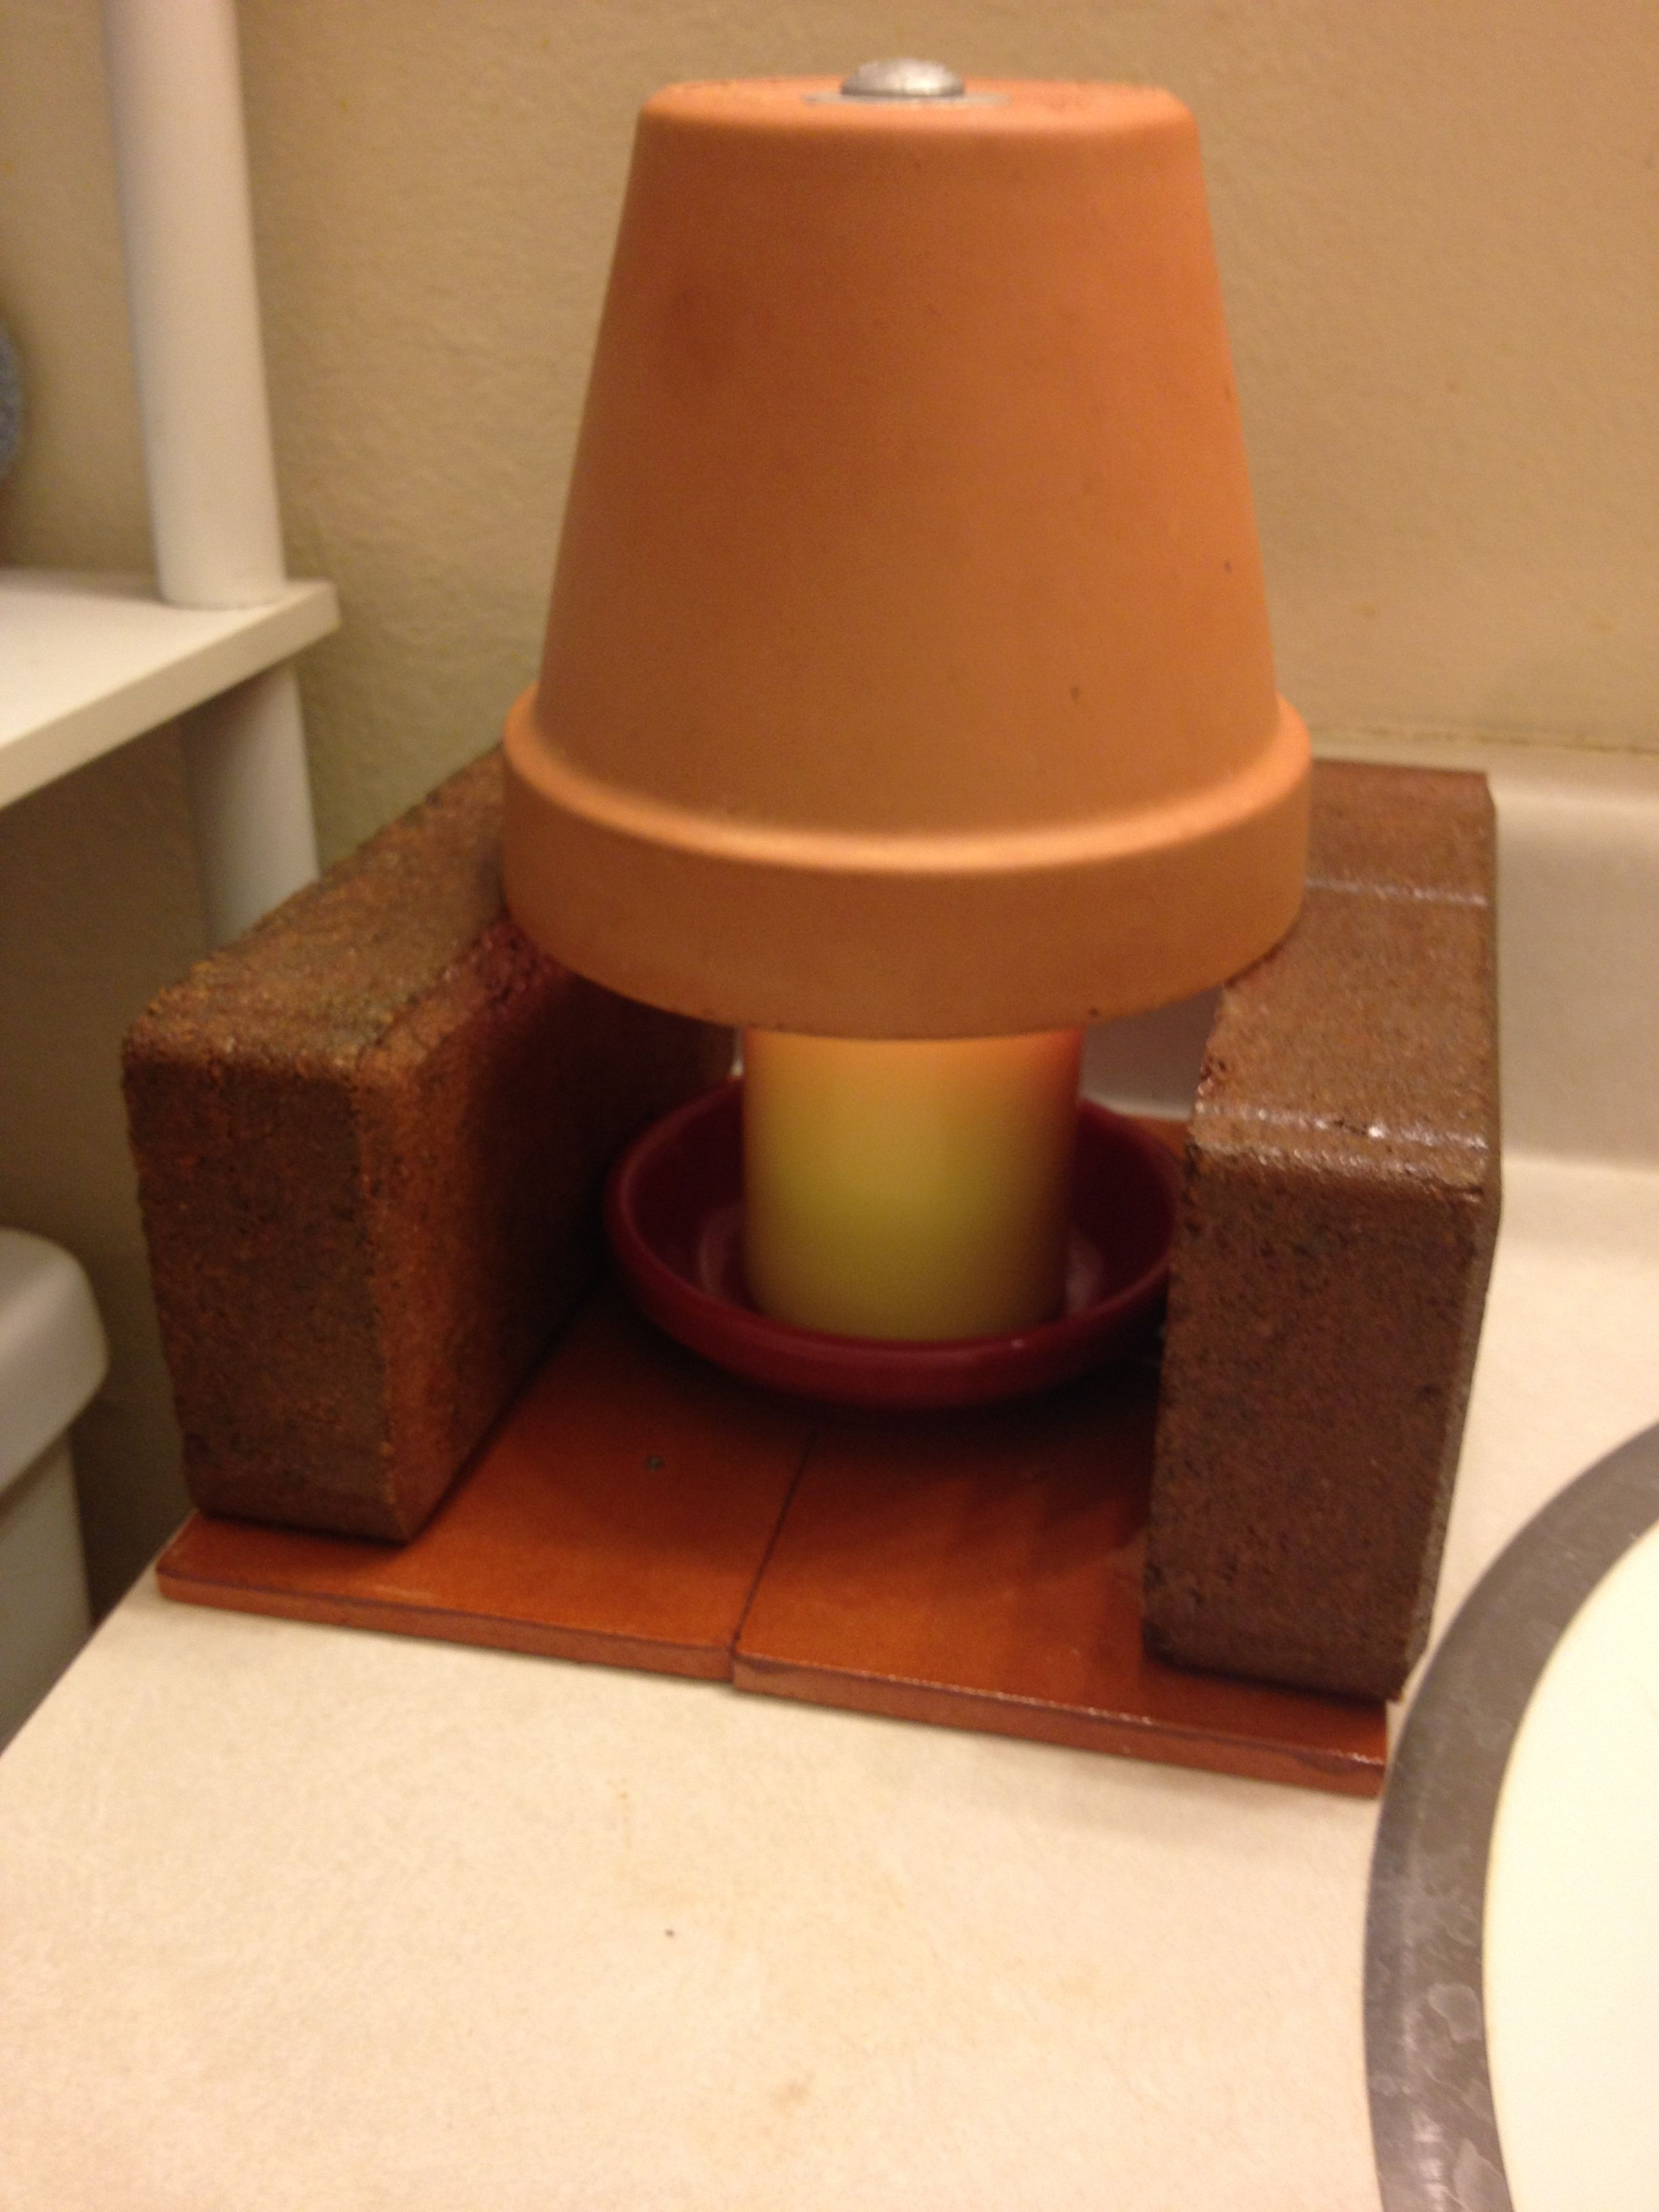 Flower pot candle heater & Flower pot candle heater | DIY heater | Candle heater Diy heater ...